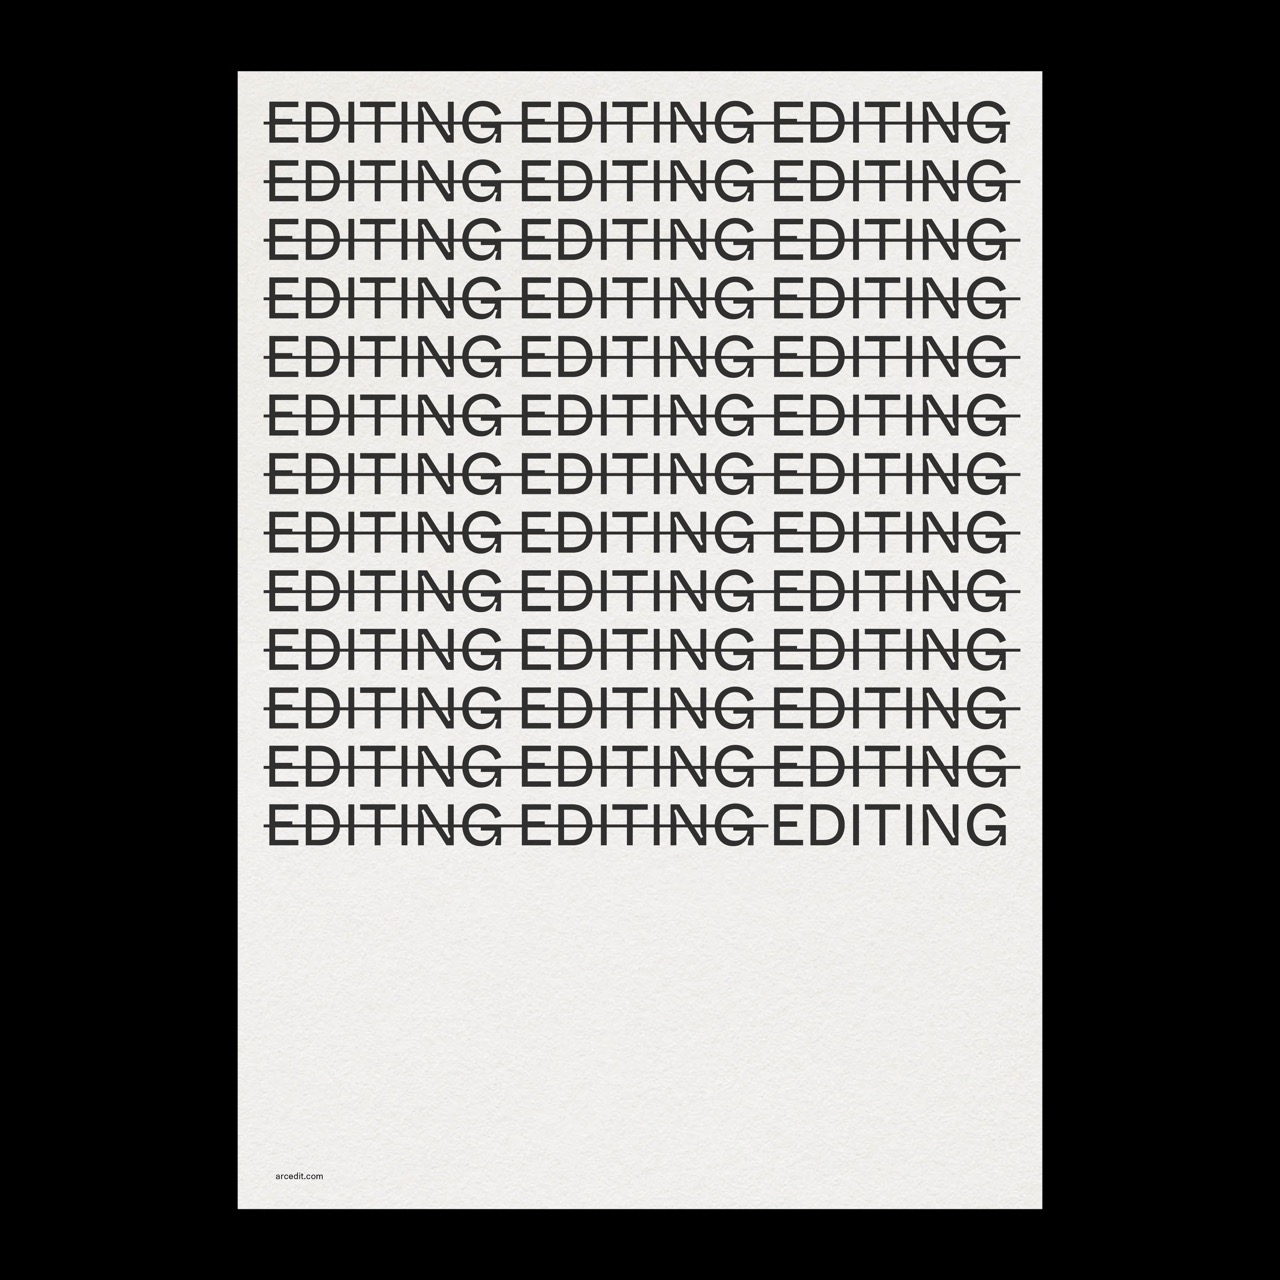 ARC EDIT launches re-brand to highlight edit+post offering